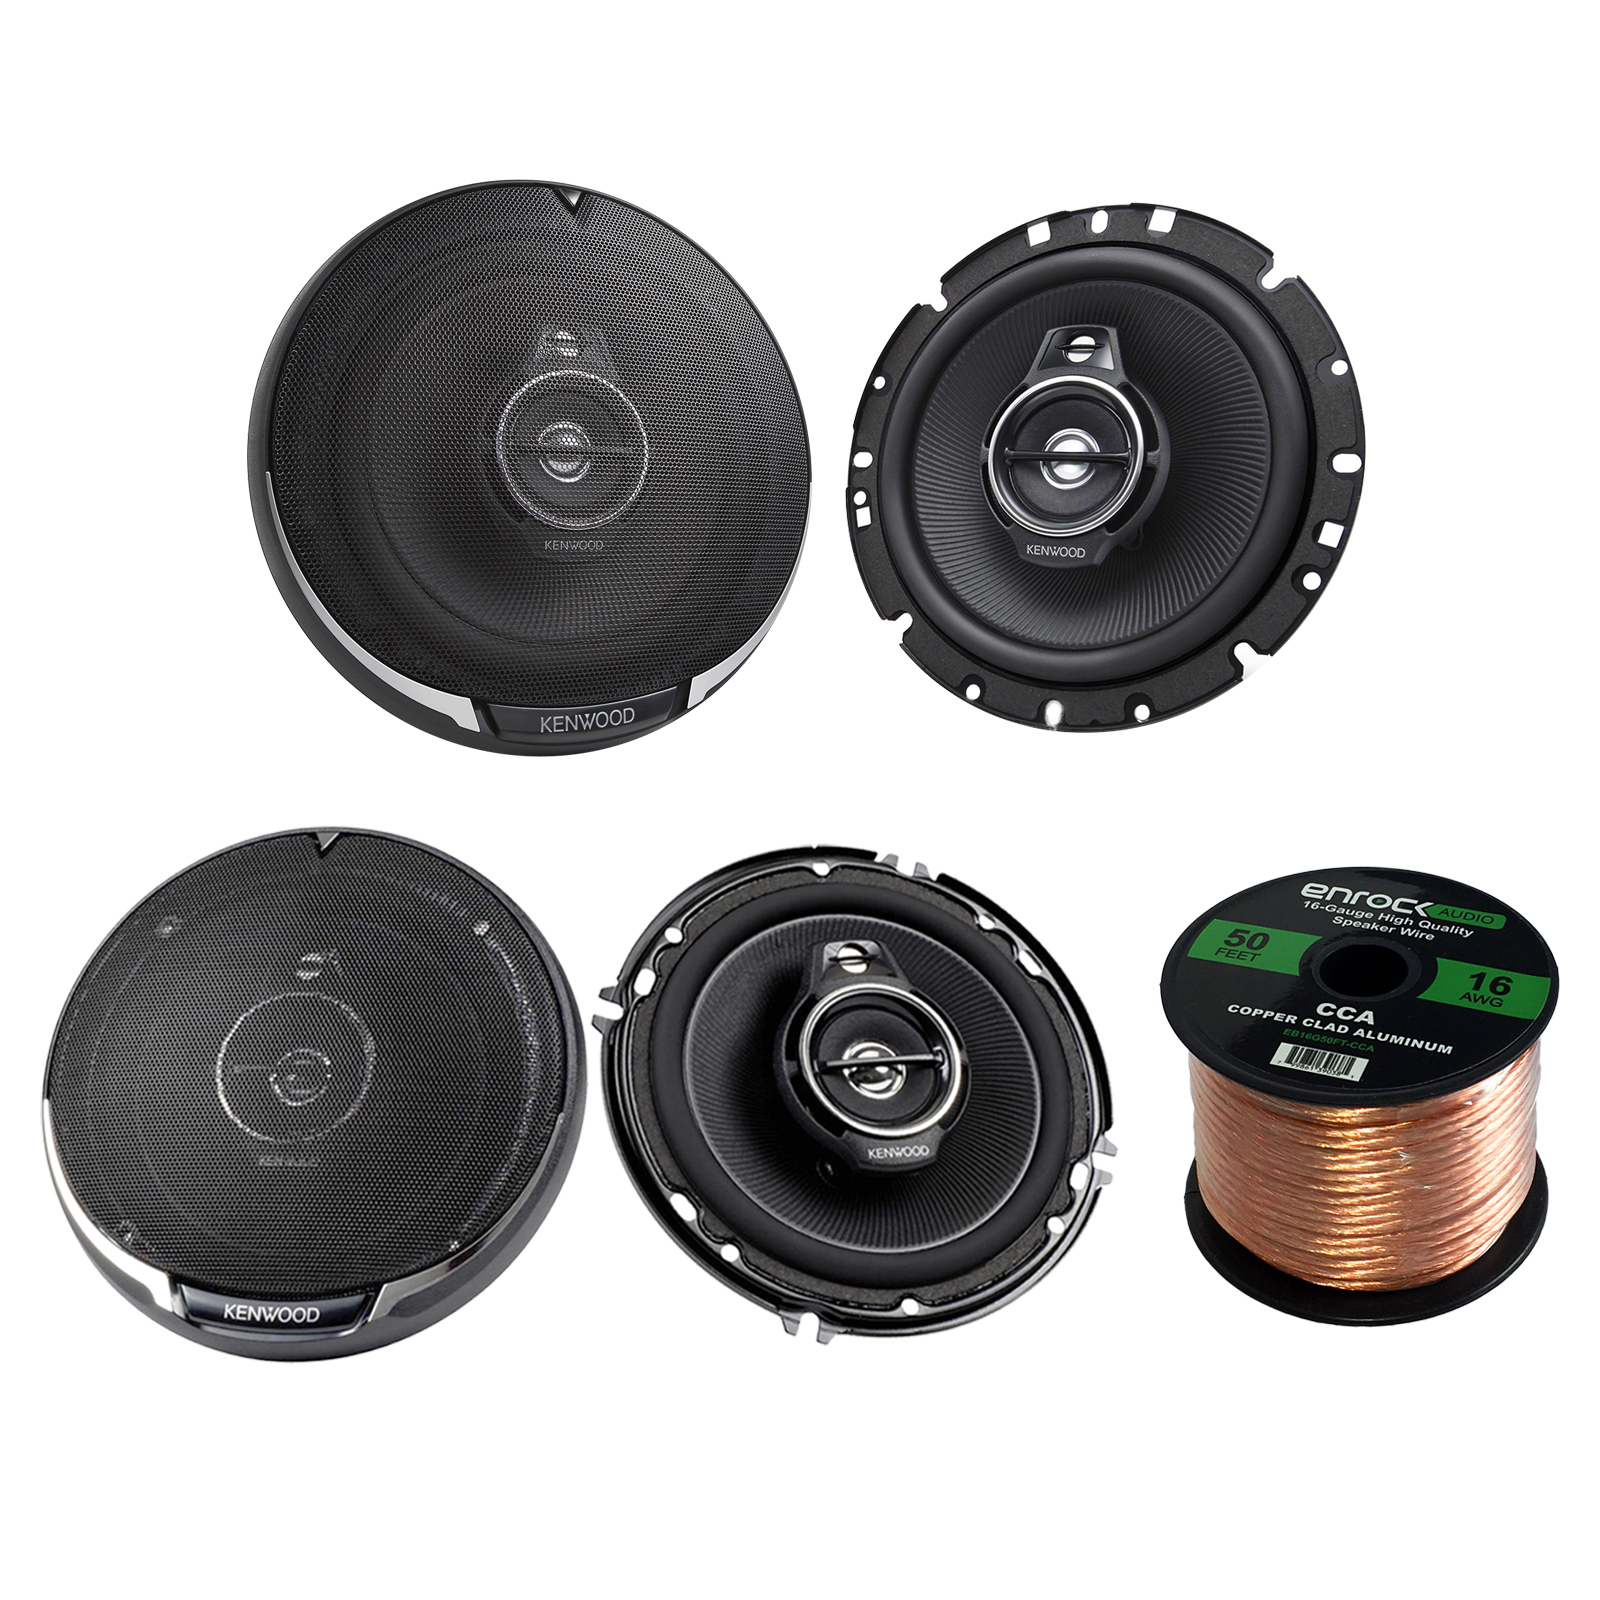 "Kenwood KFC-1795PS 660W 6-3/4"" 3-Way Black Car Speakers, Kenwood KFC-1695PS 6-1/2"" 3-way 320W Car Speakers, Enrock Audio 16-Gauge 50 Foot Speaker Wire"